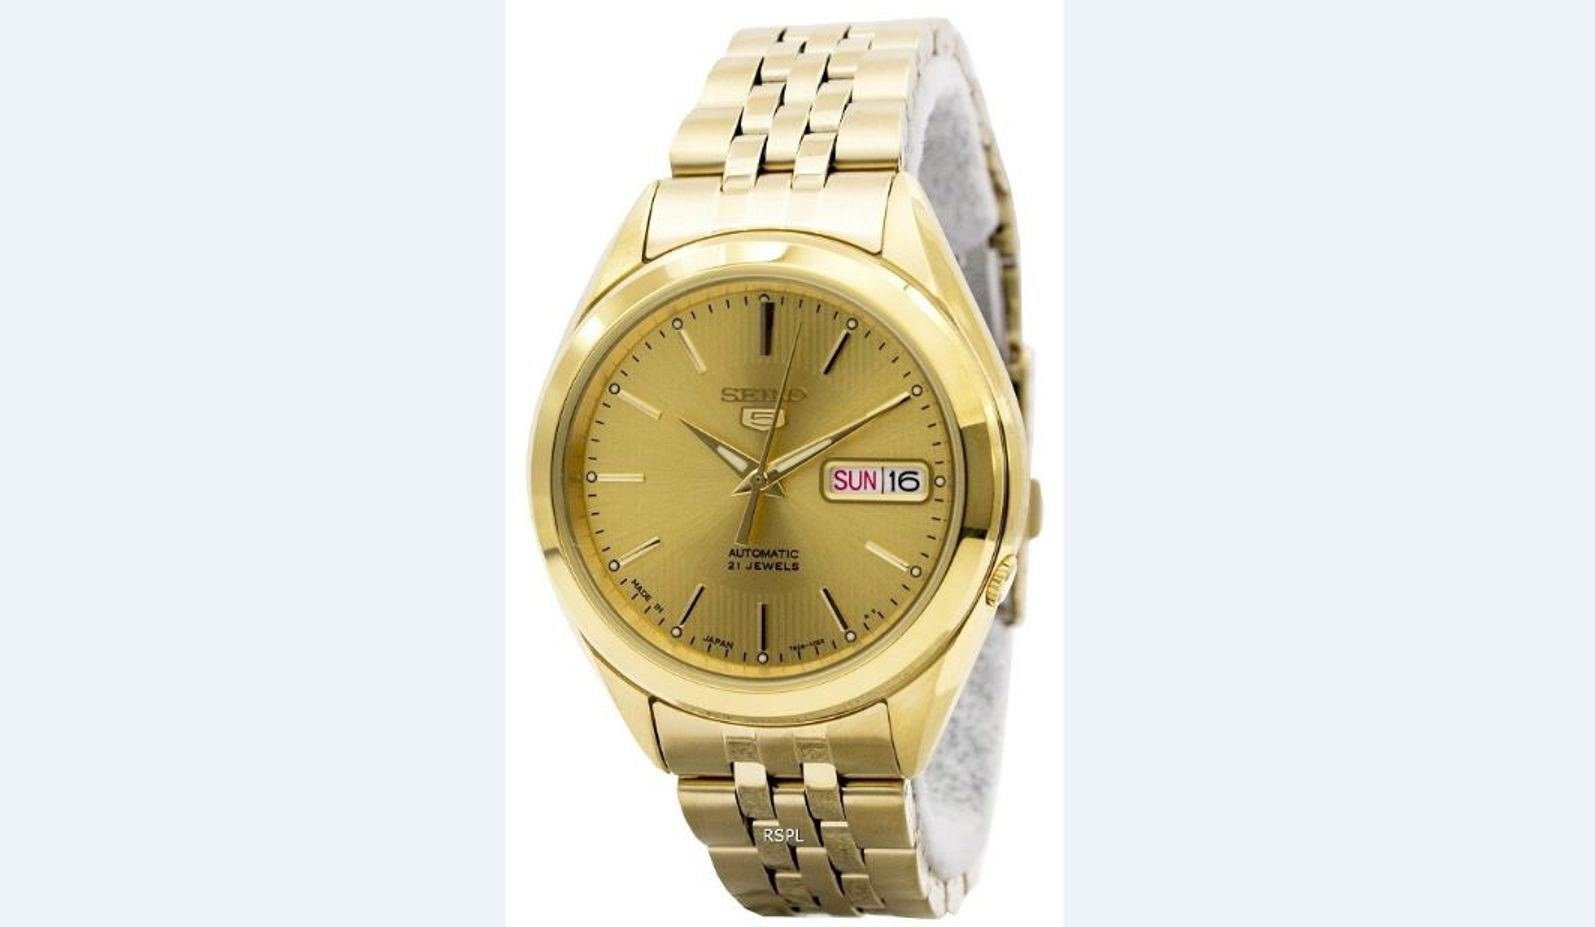 Seiko 5 Automatic 21 Jewels Japan Made SNKL28J1 SNKL28J Men's Watch: Golden Lining In Between The Techno Shimmers